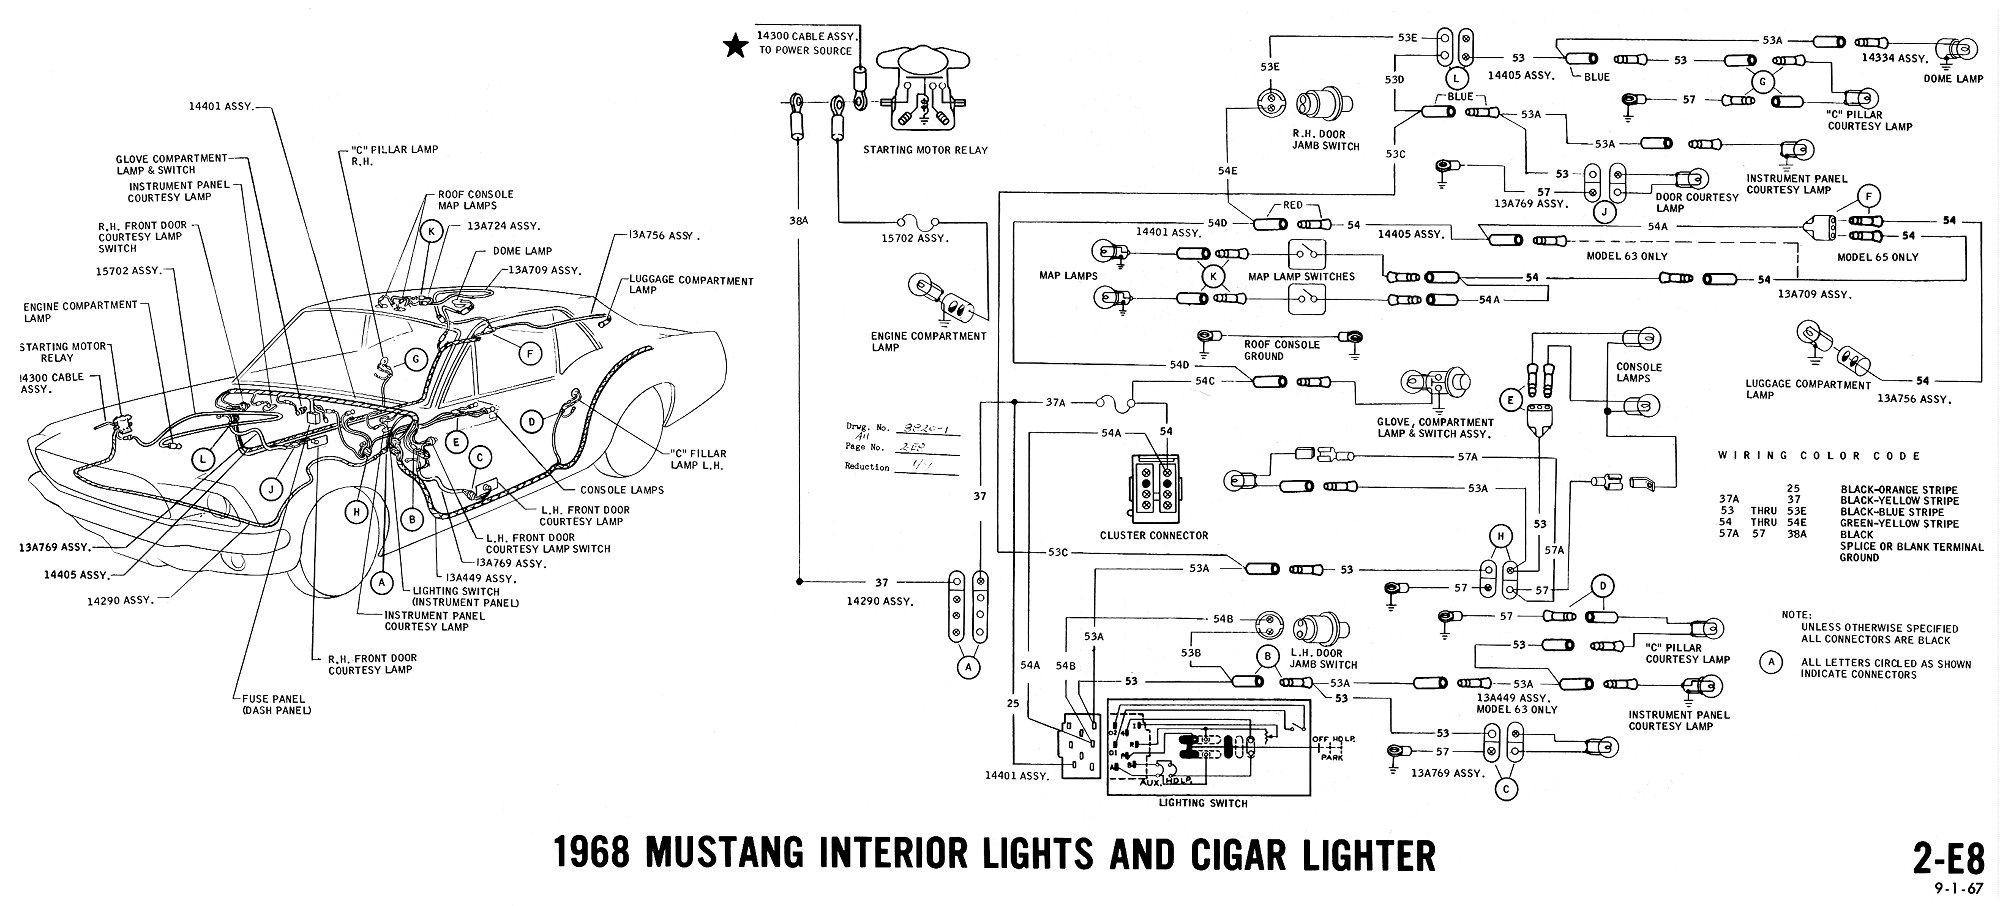 2005 Ford Mustang Wiring Diagram